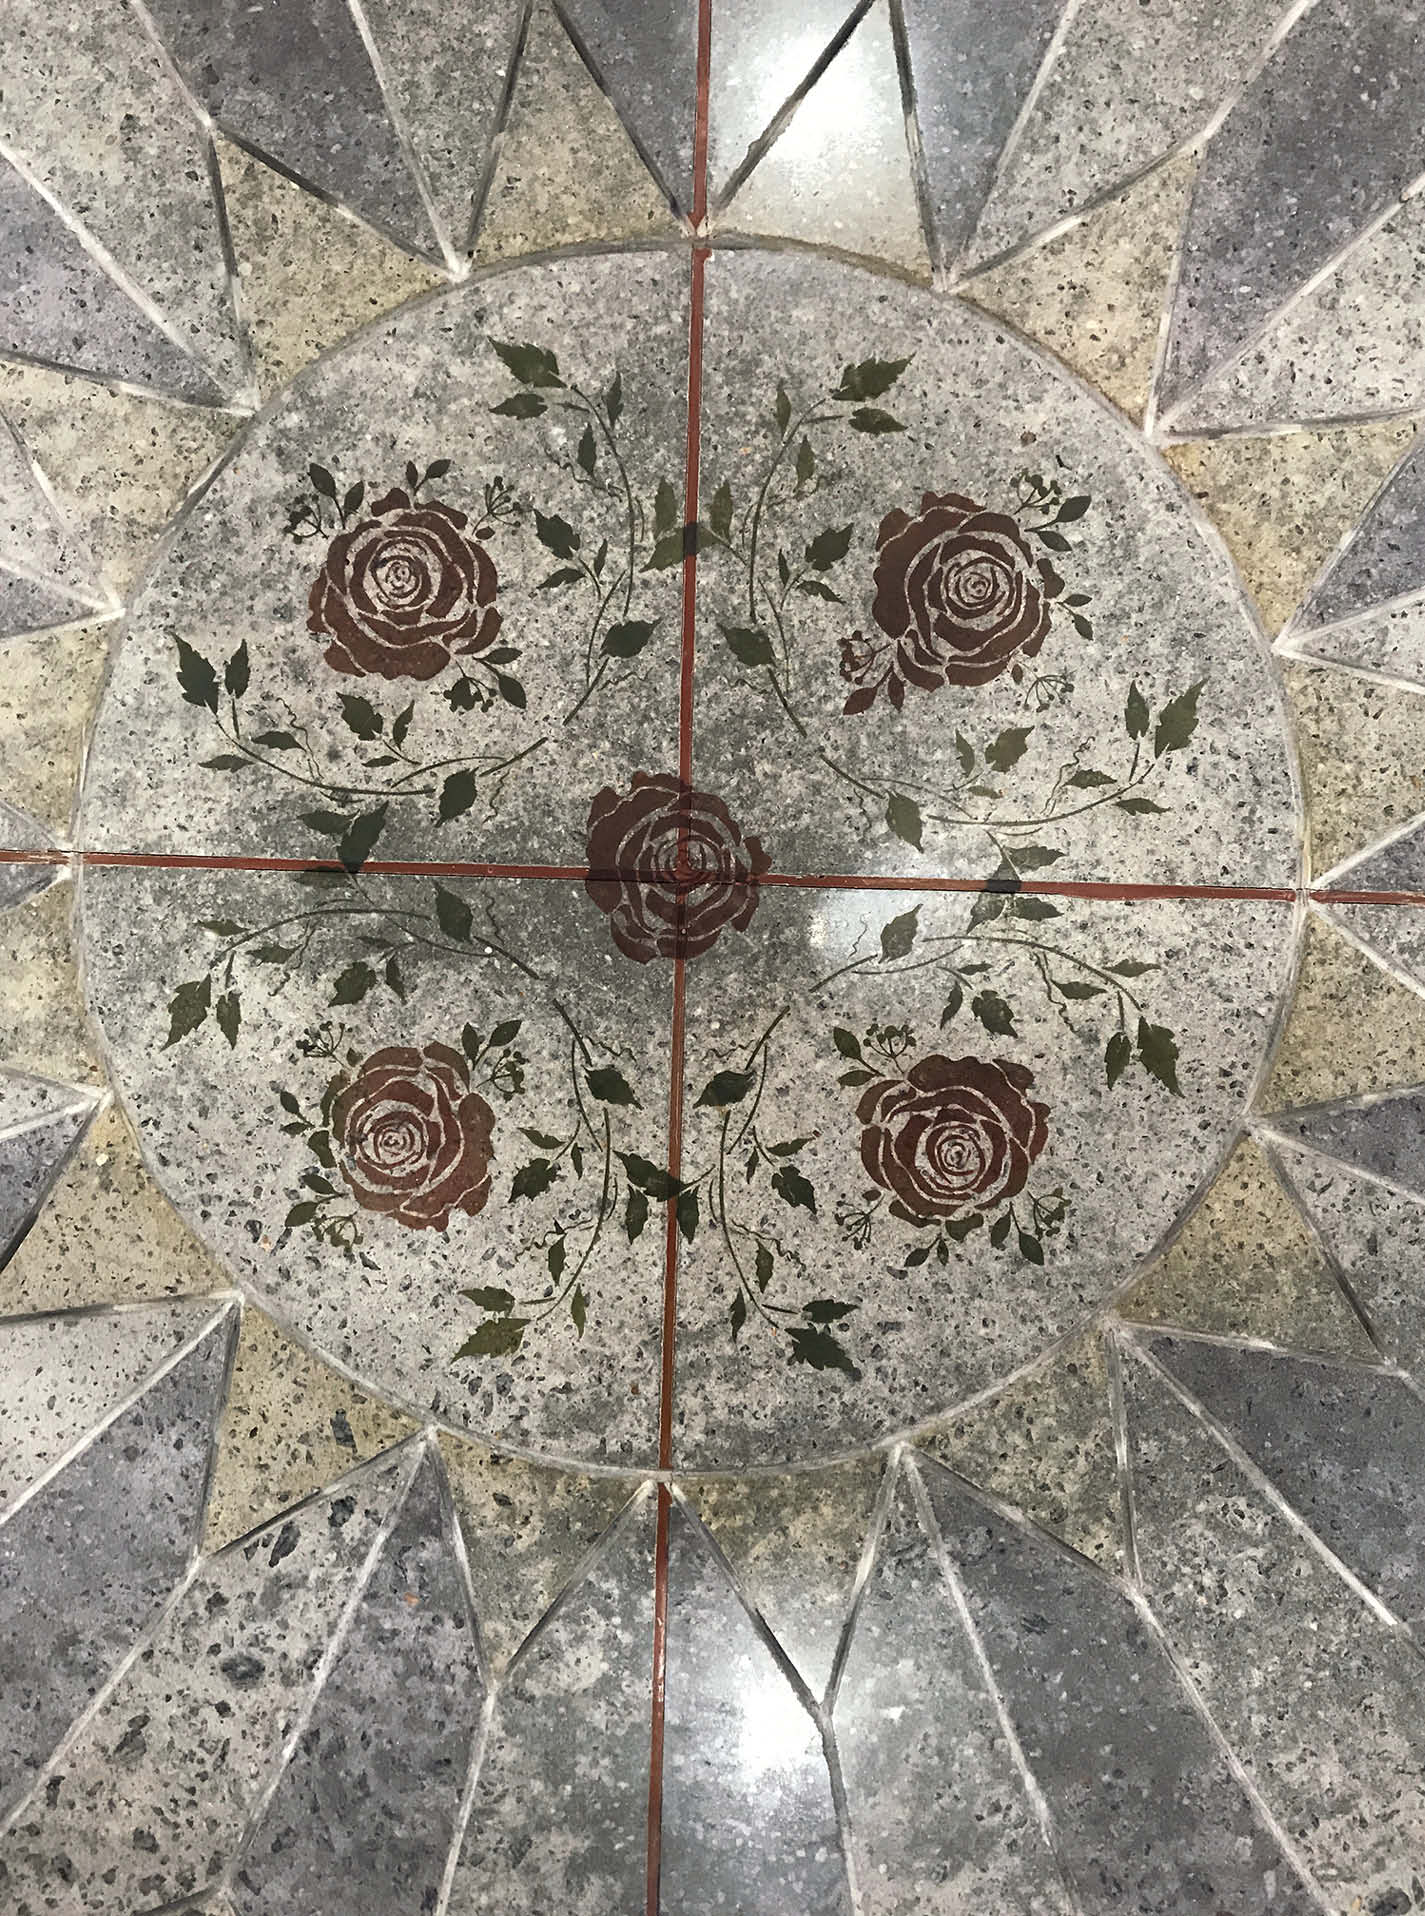 The roses and greenery in the center of the saw-cut showroom floor are made with Flattoo stencils from Surface Gel Tek. Stencils only comprise about 10% of the floor's design.